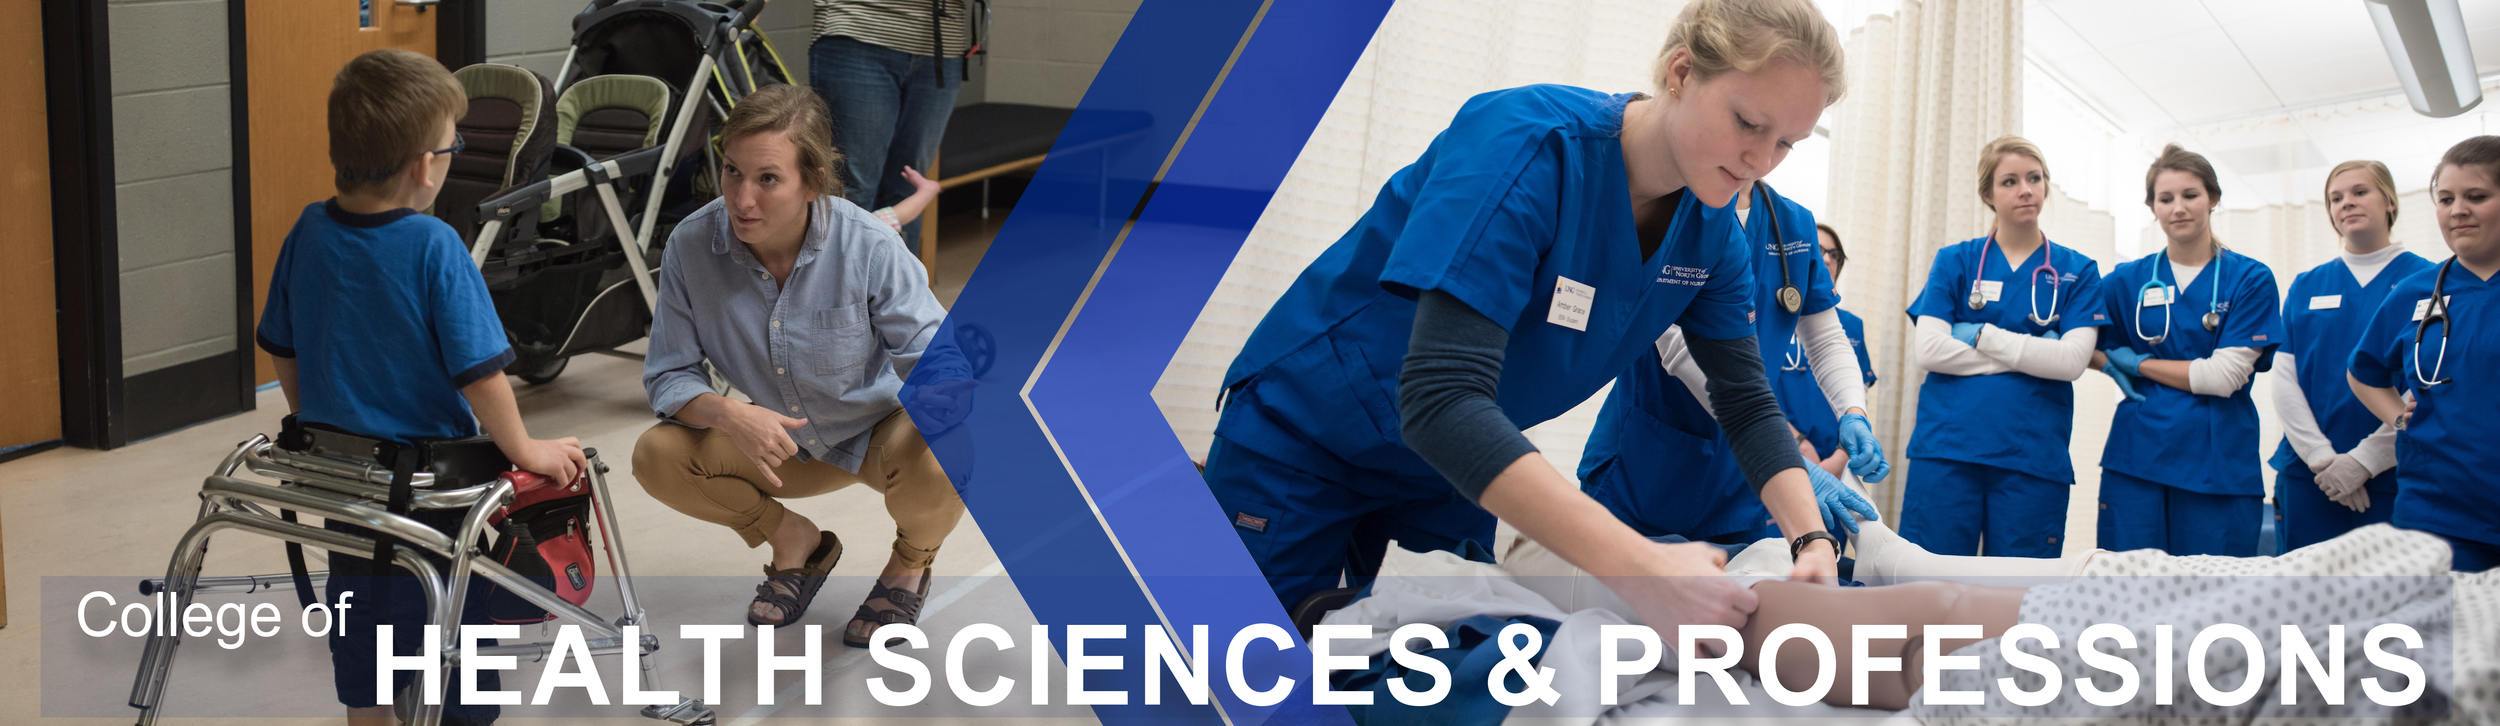 College of Health Sciences and Professions page banner: Features a physical therapist student helping a child walk with his walker. Second image features nursing students learning how to tend to a patient.